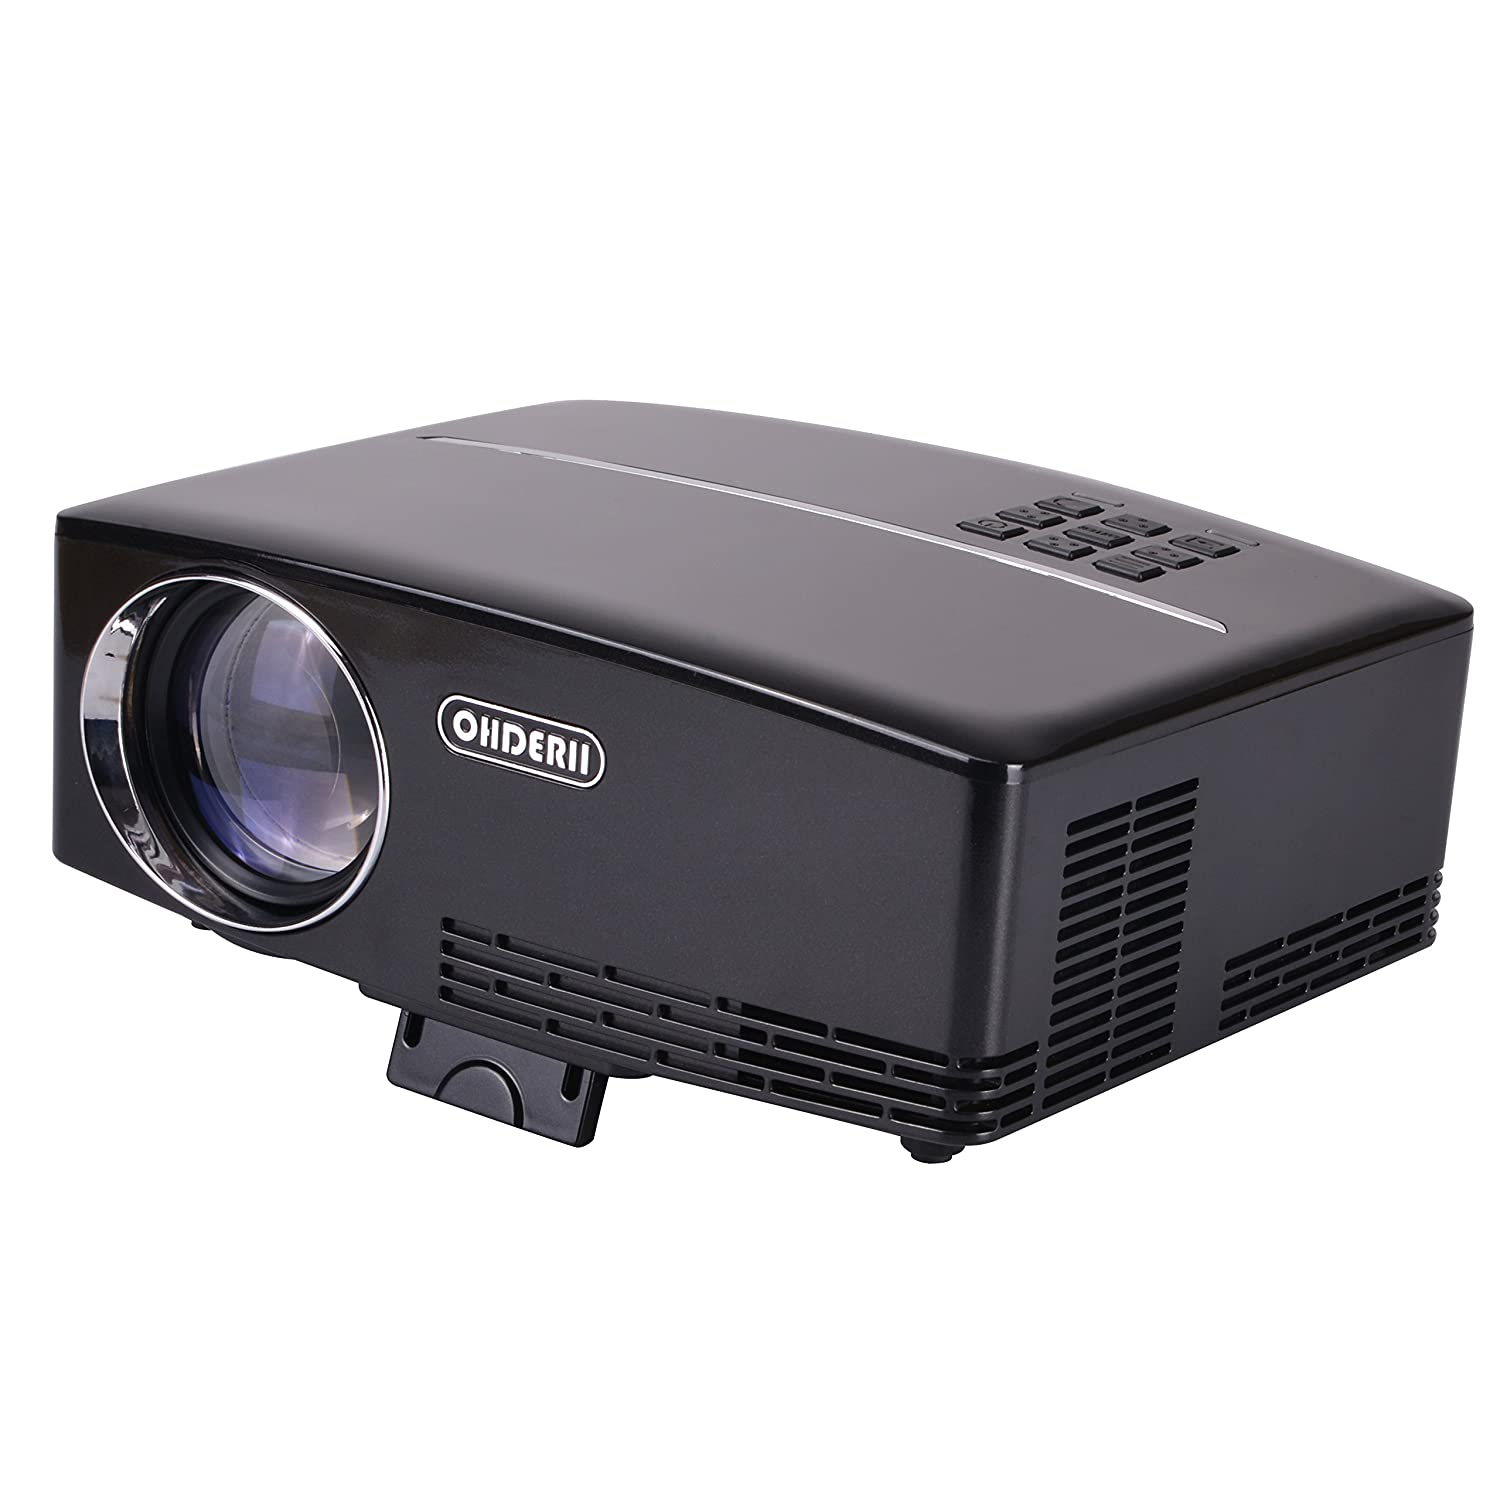 amazon com ohderii mini projector 1800 lumens projector for